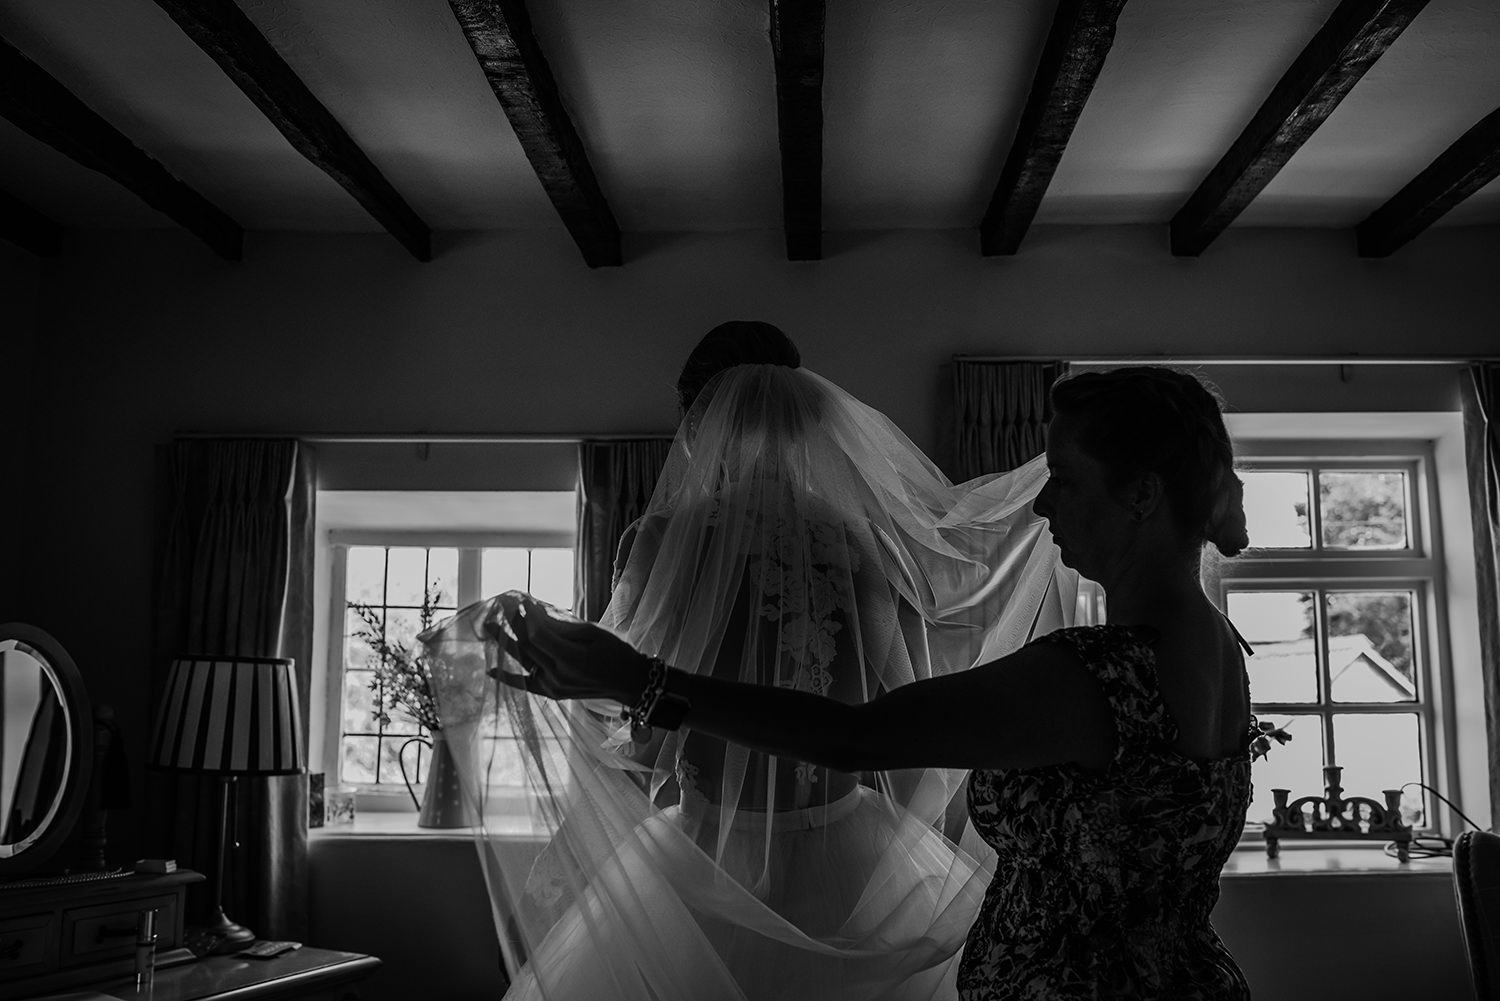 bw photo of the bride's veil being fitted